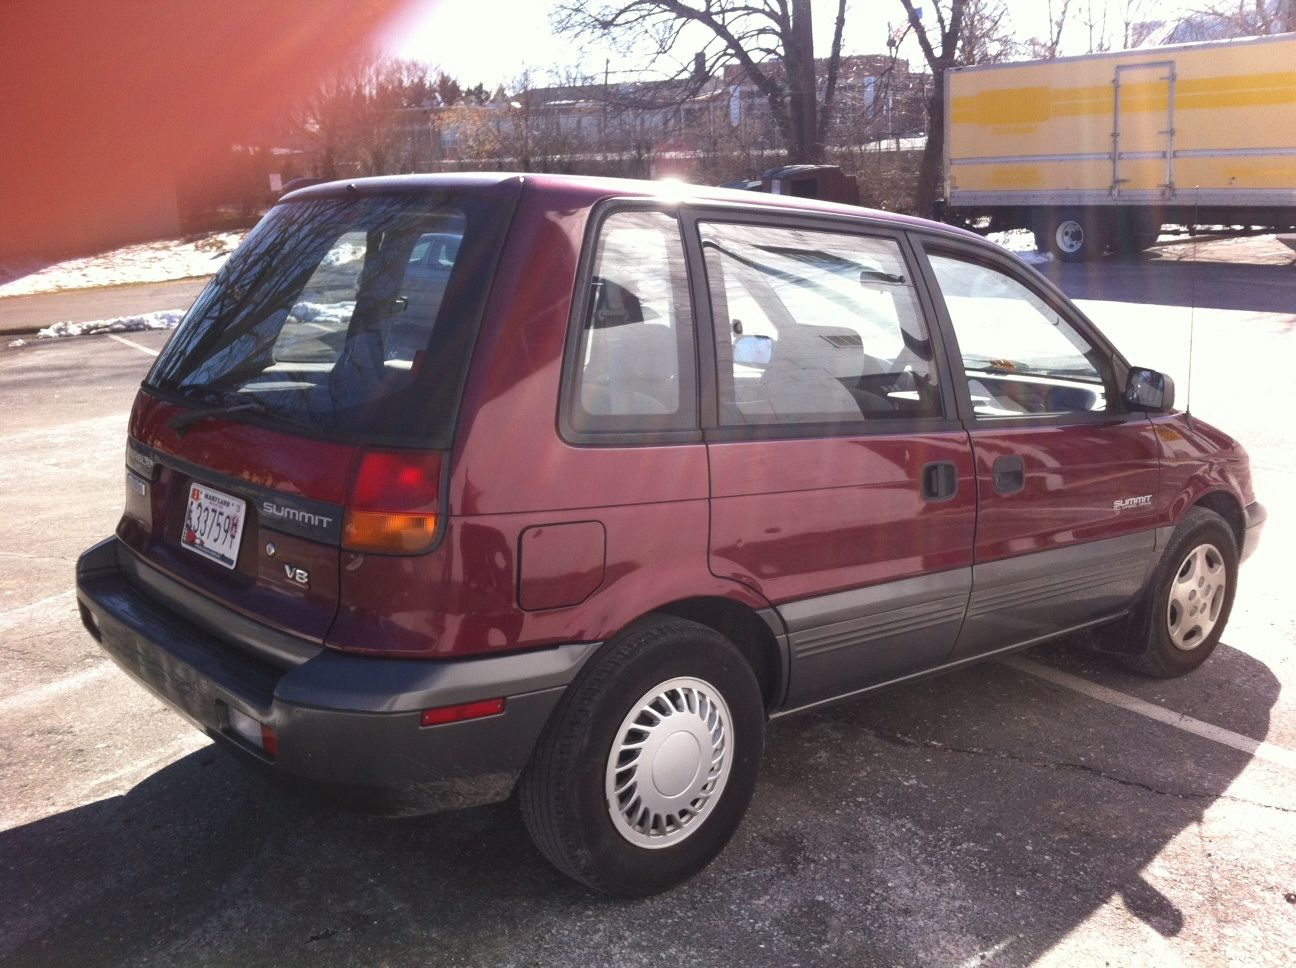 1994 Eagle Summit 4wd 3 Door Wagon For Sale In Rockville